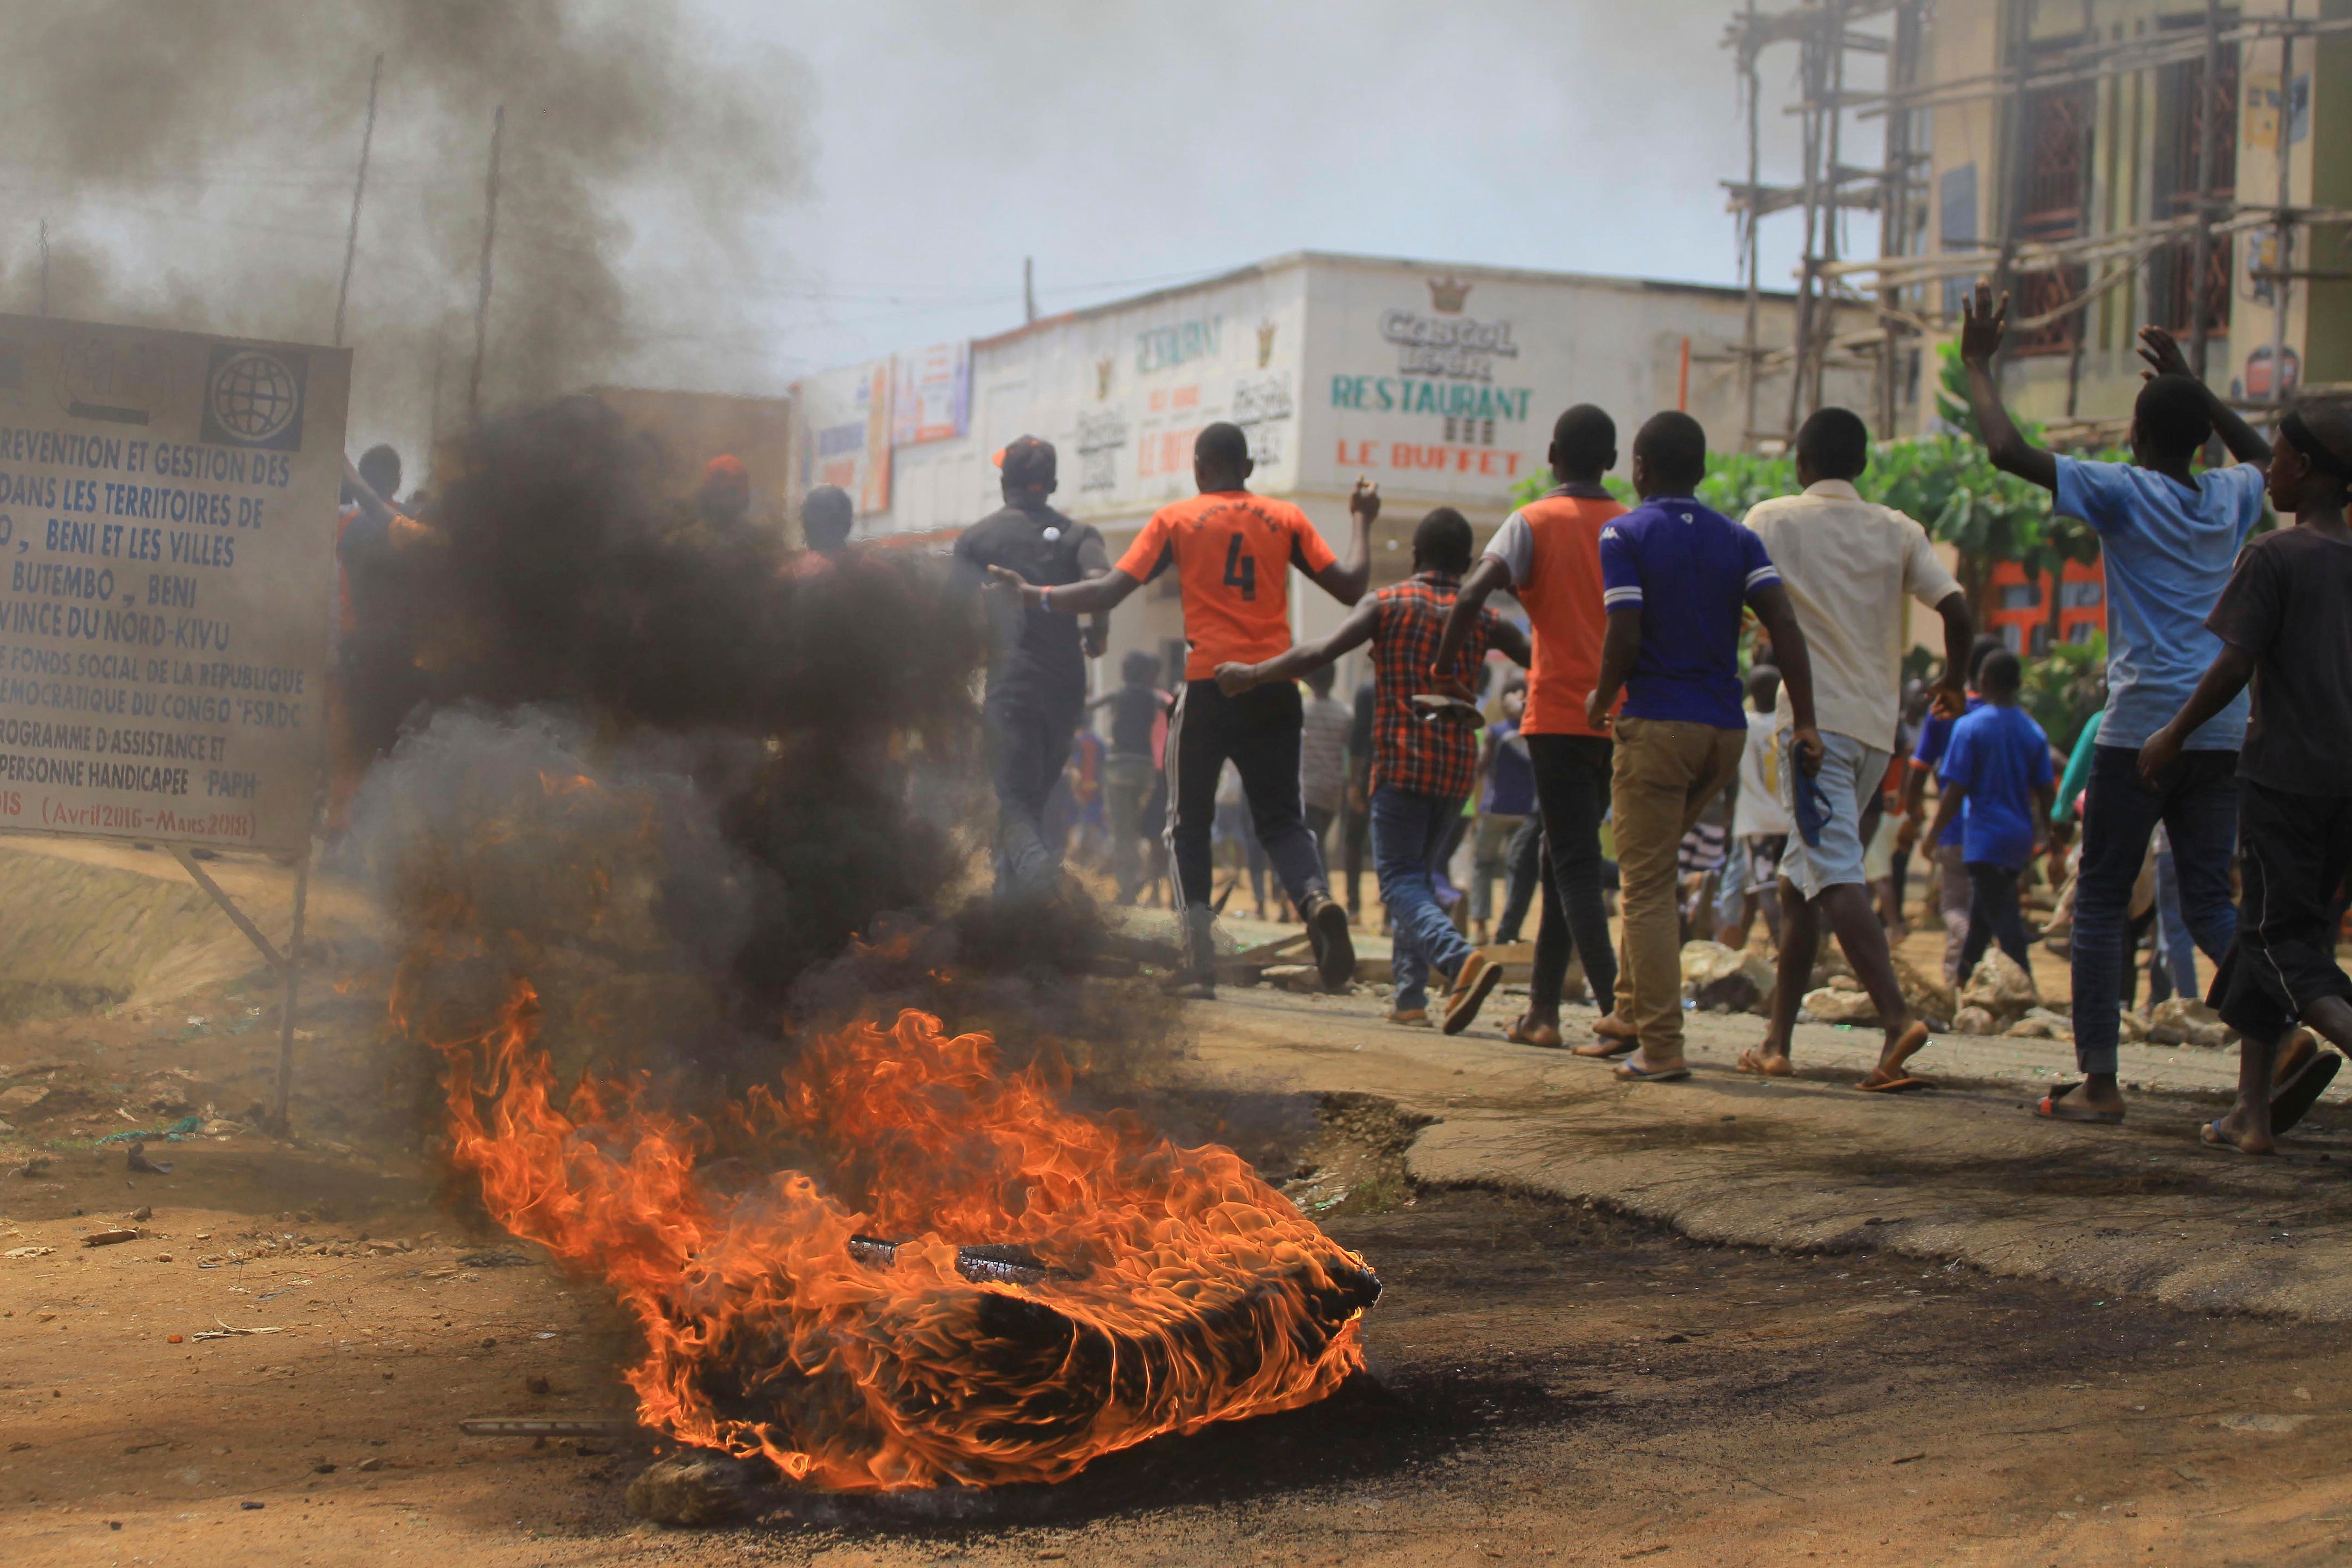 Protesters walk past a burning tyre in the Eastern Congolese town of Beni, Friday Dec. 28, 2018, as they demonstrate against the election postponed until March 2019, announced by Congo's electoral commission for Beni residents that is blamed on a deadly Ebola outbreak.  Congo's leader Joseph Kabila has blamed a deadly Ebola virus outbreak for the last-minute decision to keep an estimated 1 million voters from the polls in Sunday's long-delayed presidential election. (AP Photo/Al-hadji Kudra Maliro)